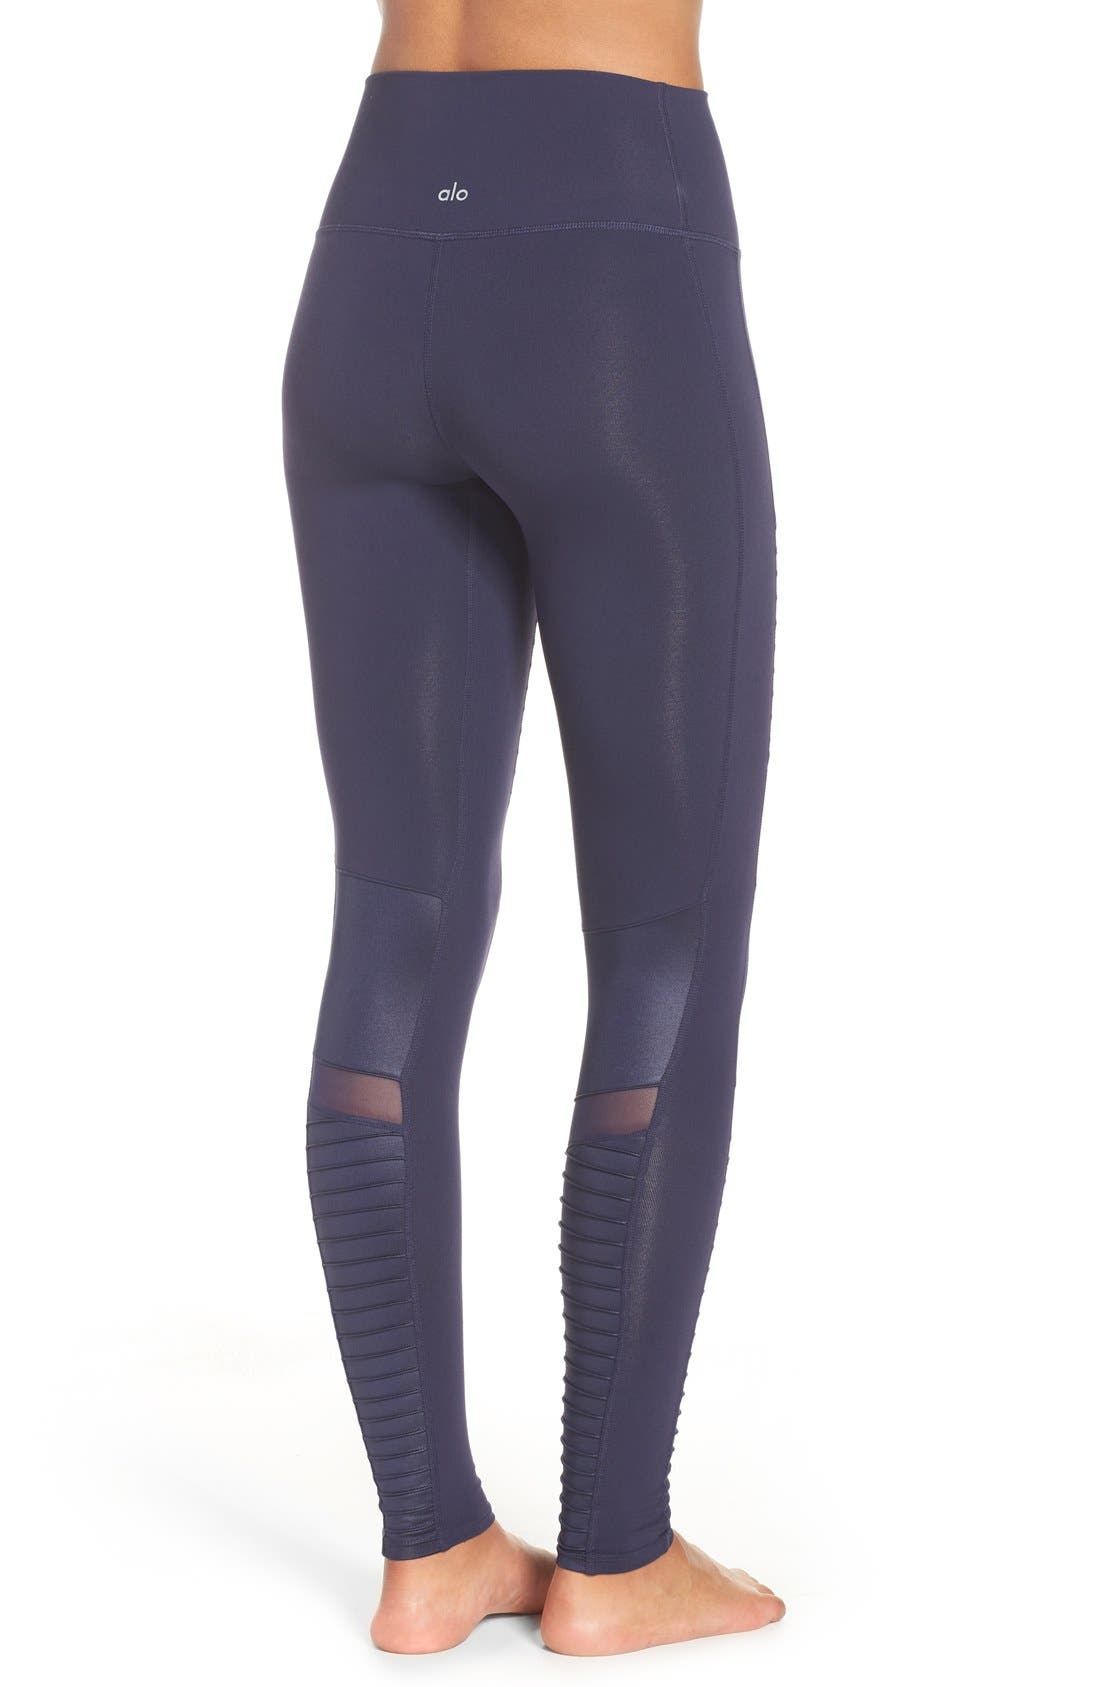 High Waist Moto Leggings,                             Alternate thumbnail 2, color,                             Rich Navy/ Rich Navy Glossy